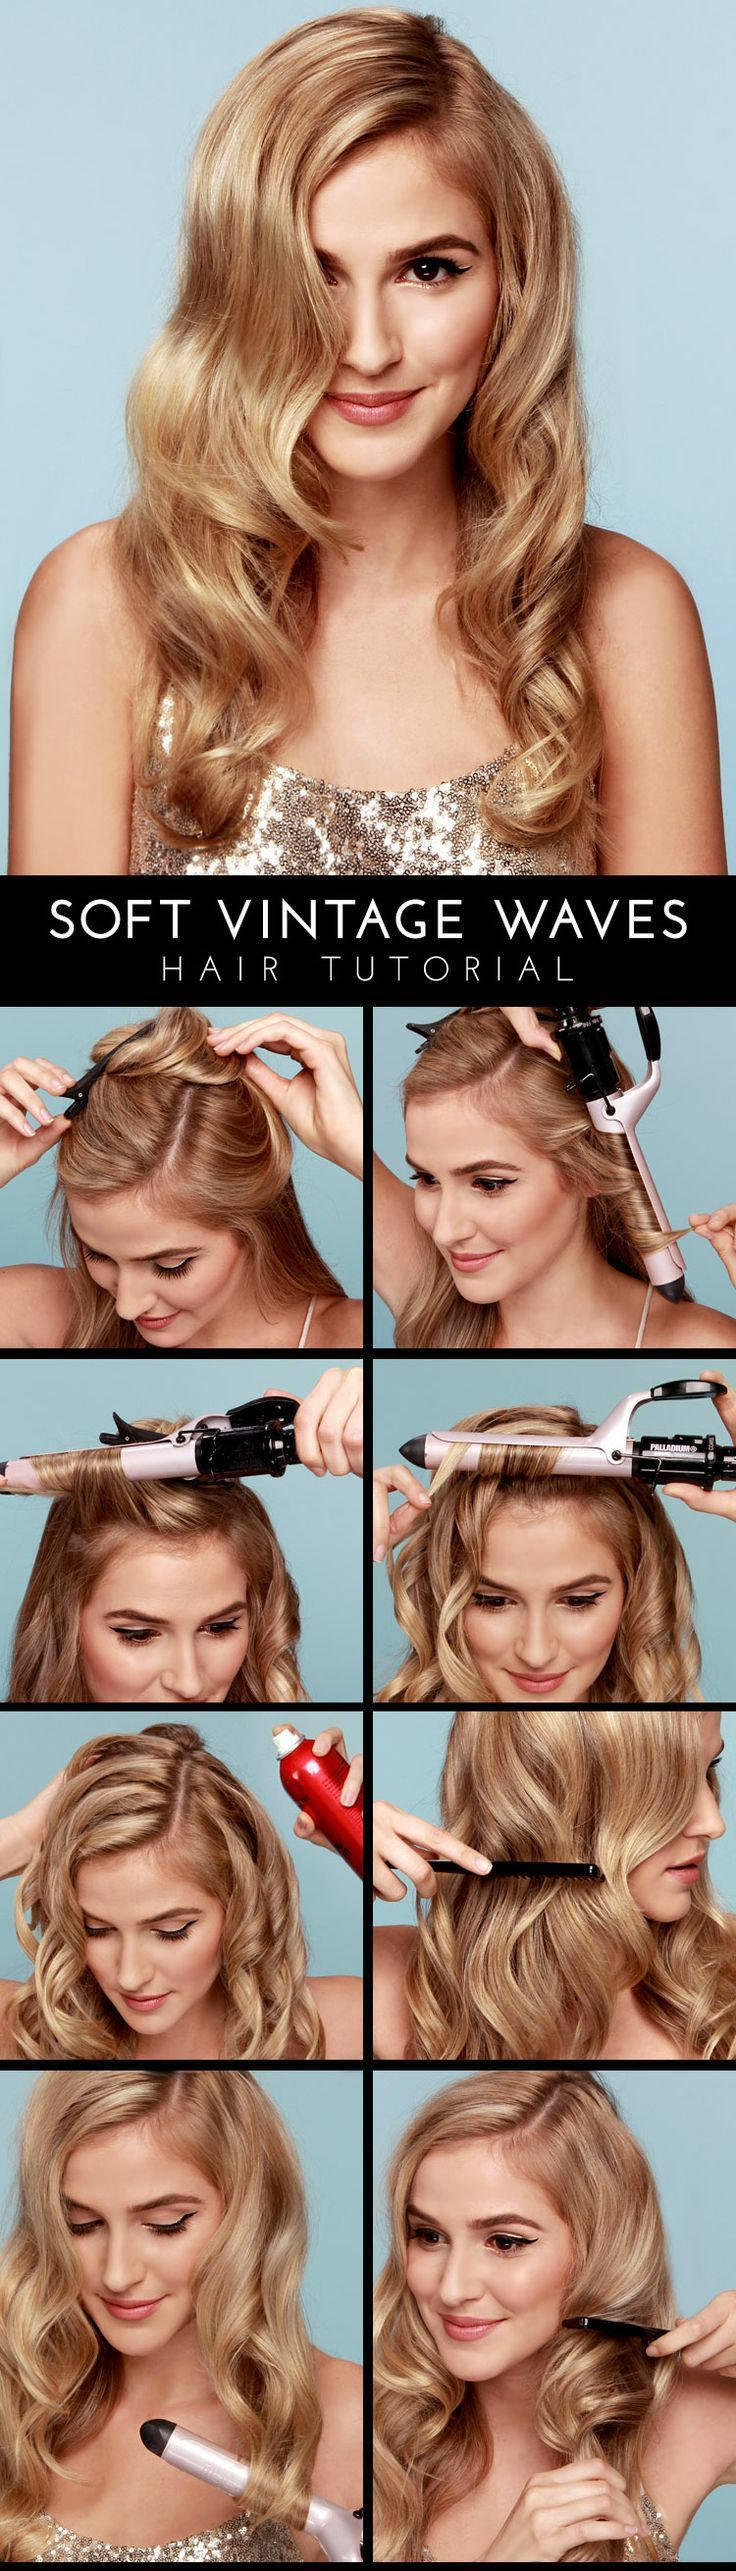 Need a quick lesson on how to be vintage glam? Check out these tutorials and then check out sexyhair.com for all the products you will need!